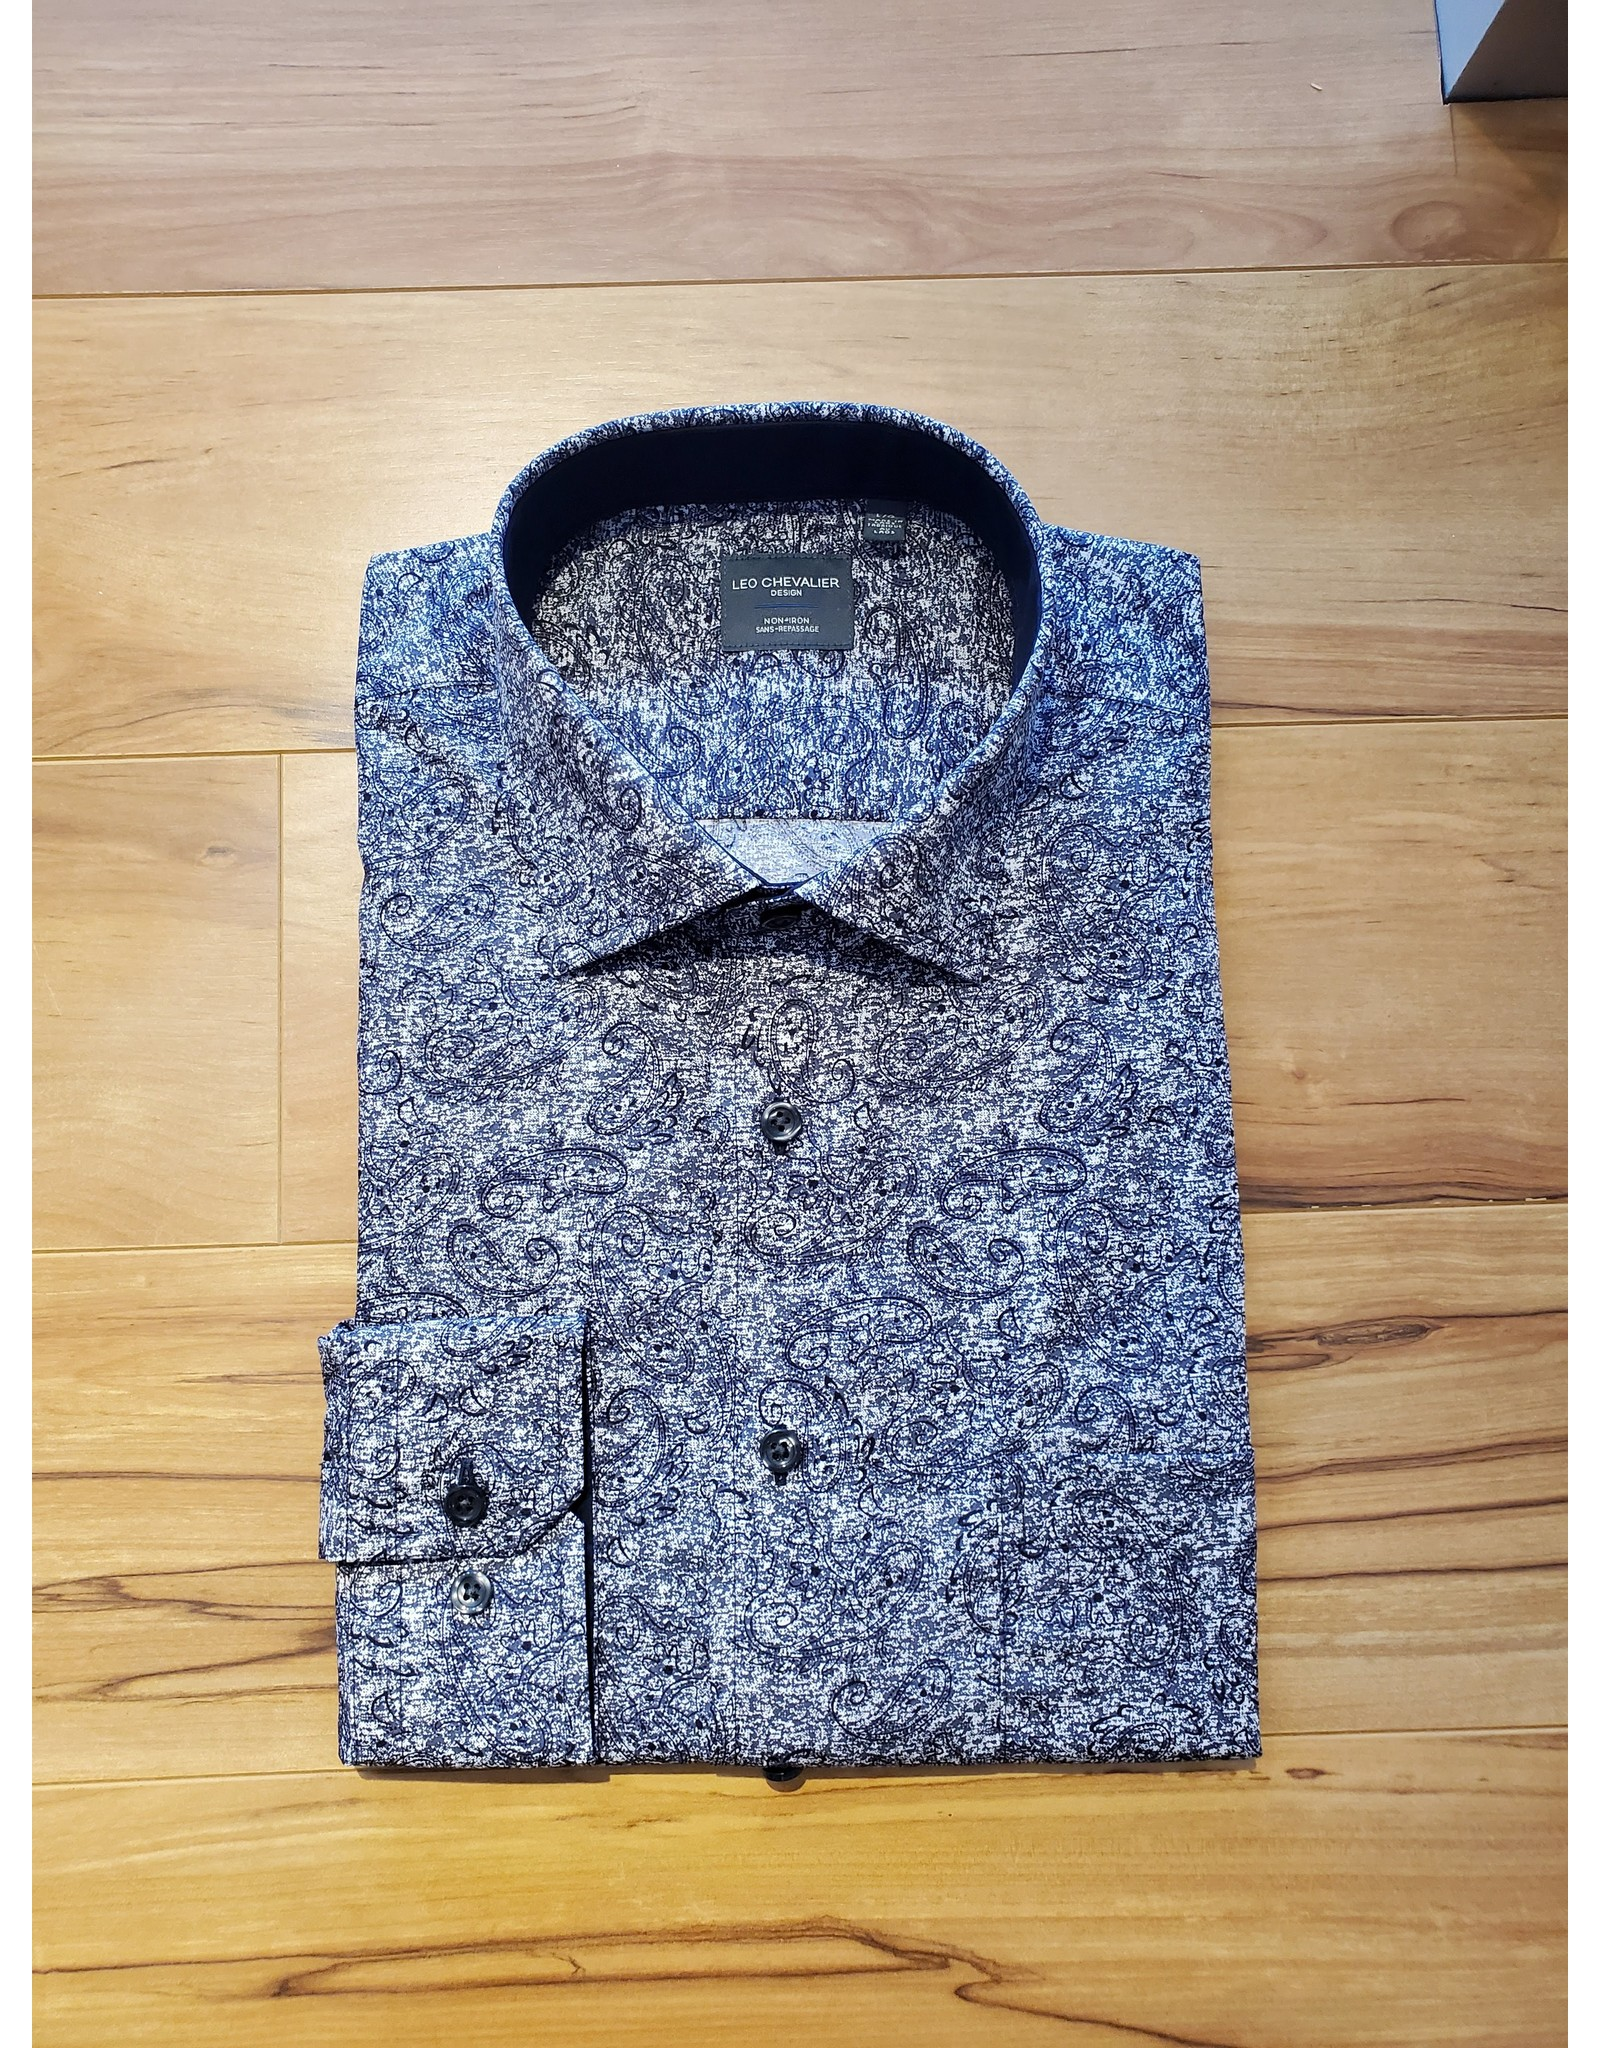 Leo Chevalier Leo Chevalier Long Sleeve Classic Fit Shirt - Tone-on-Tone Grey Paisley